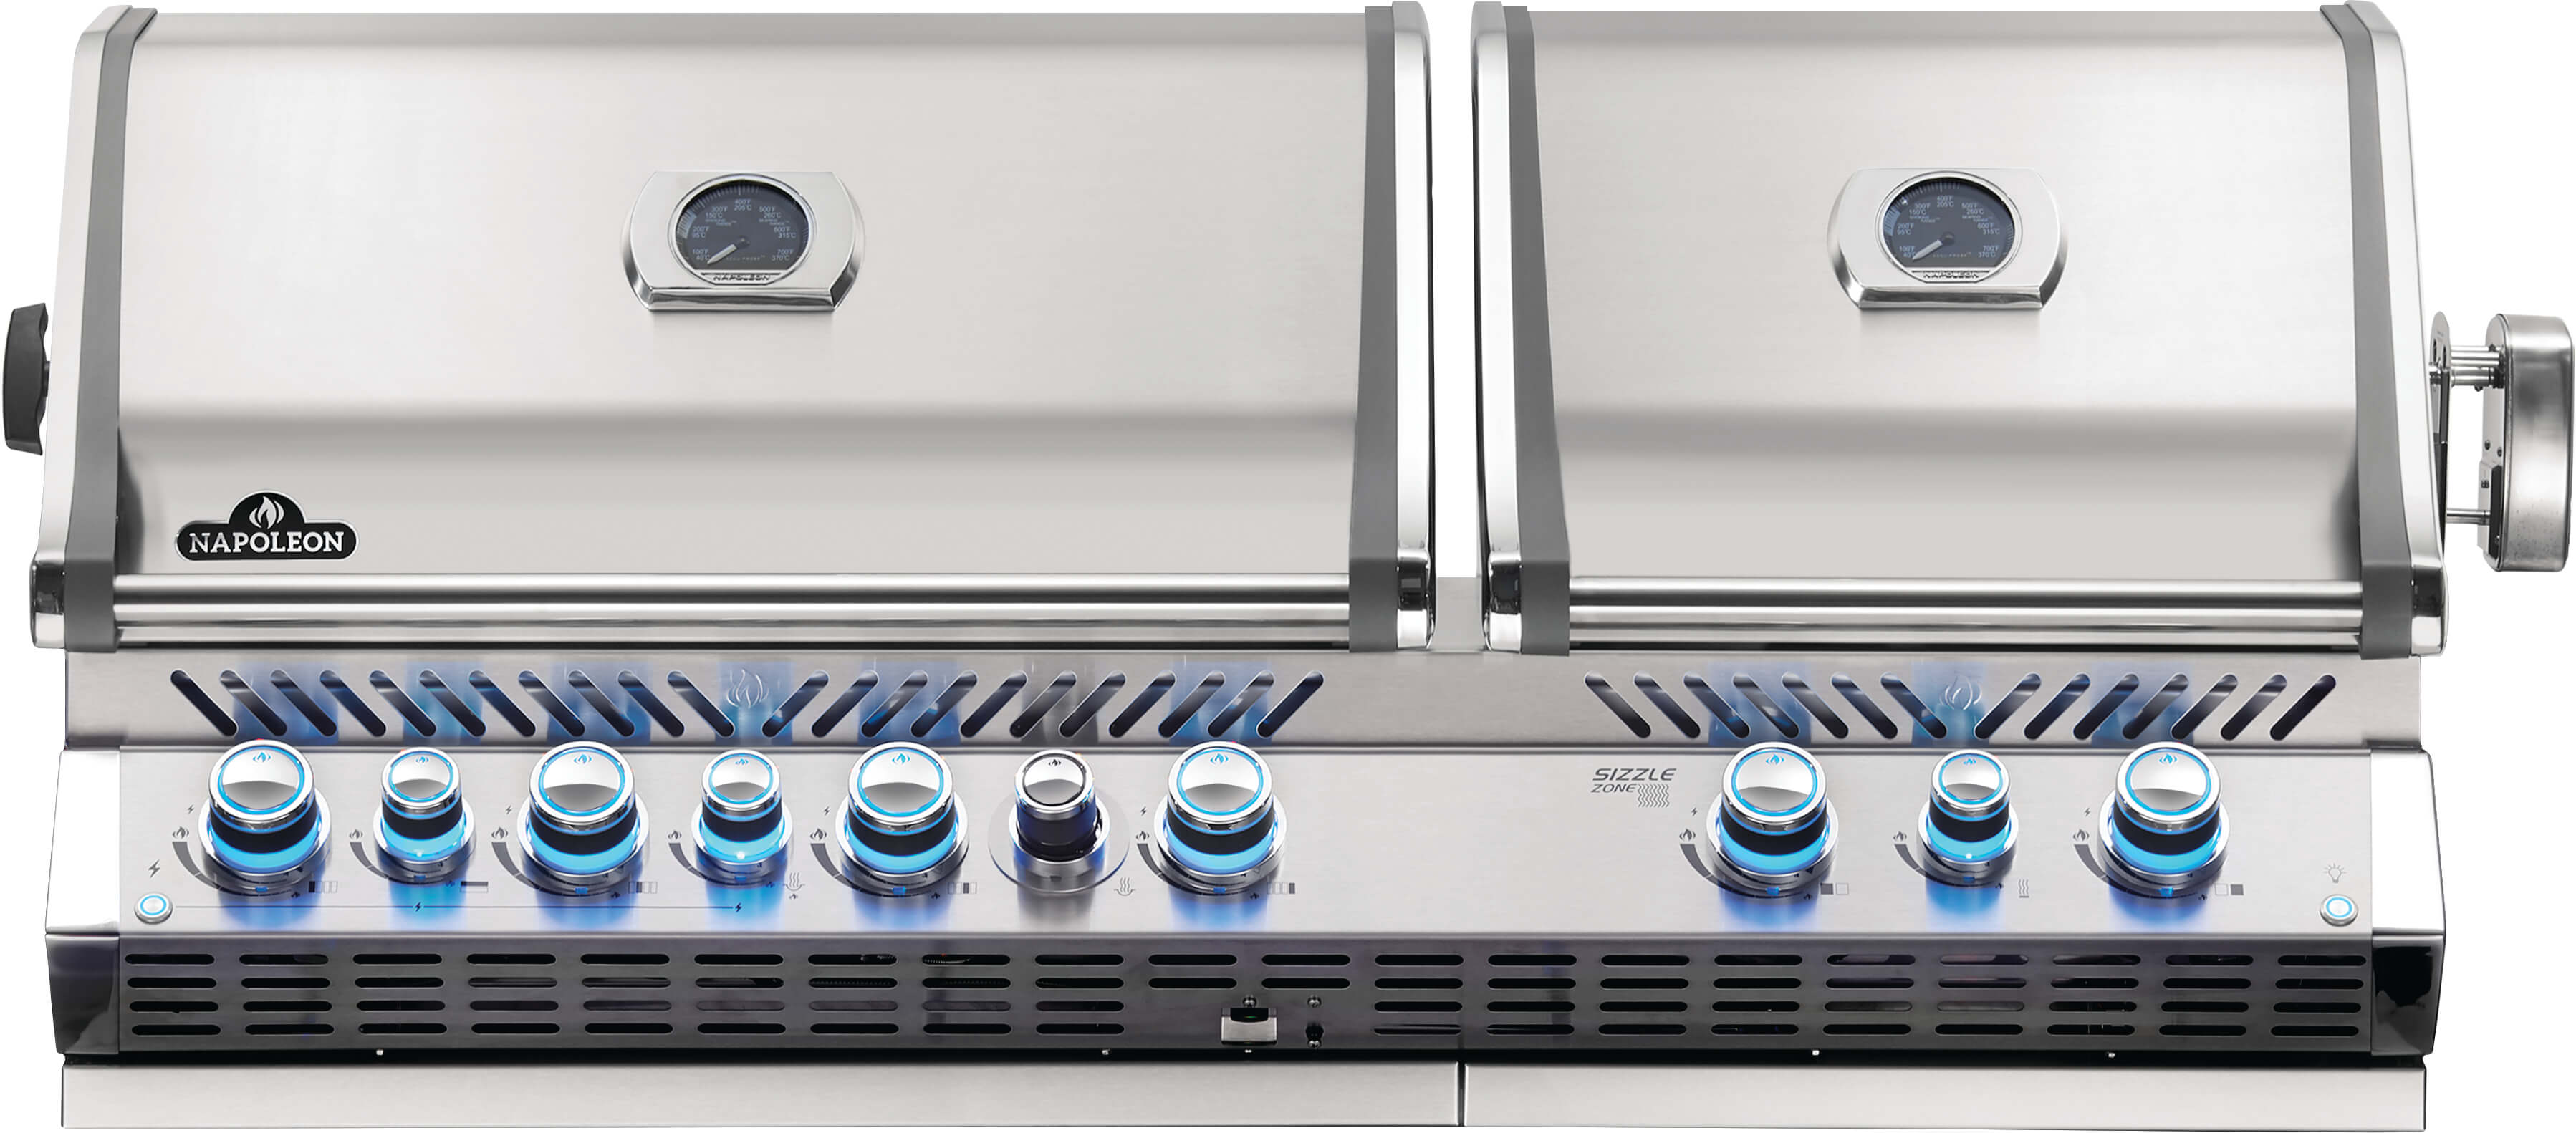 Built-in Prestige PRO™ 825 Natural Gas Grill Head with Infrared Bottom and Rear Burner, Stainless Steel